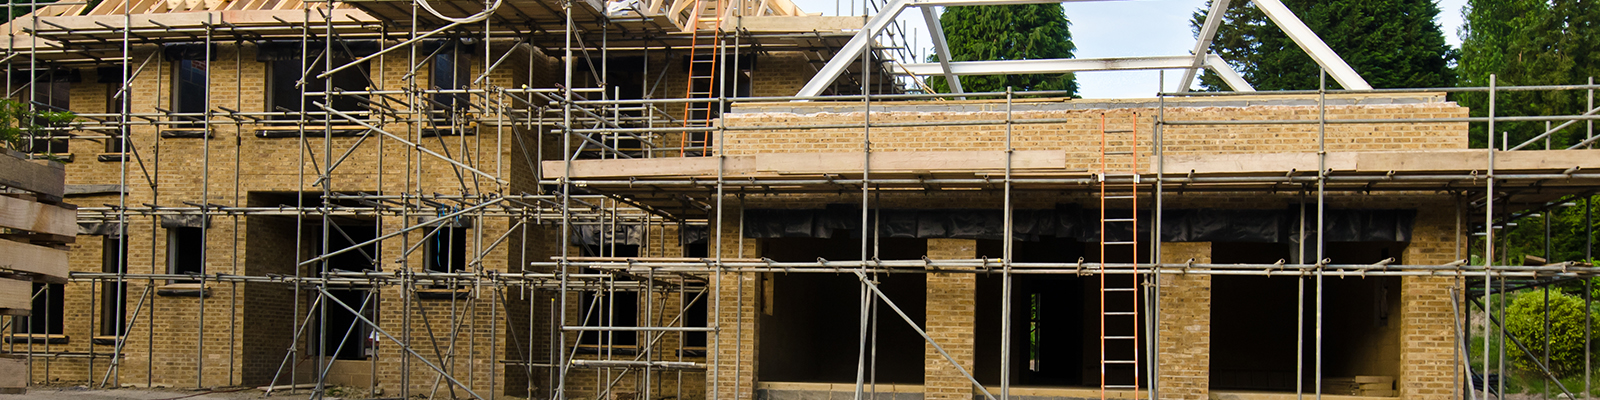 New Build Brickwork in London